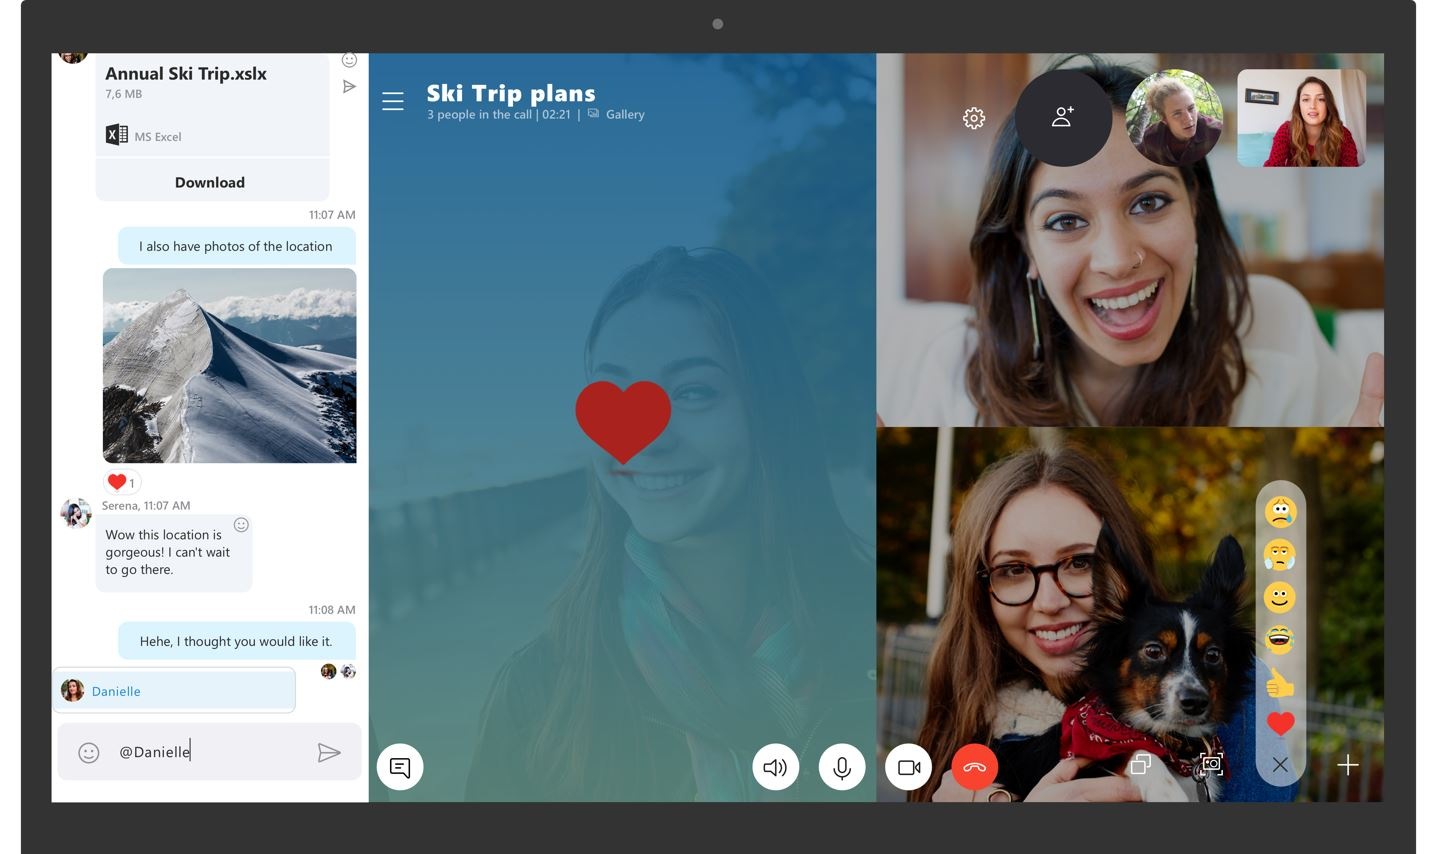 Skype for Windows 10 gets a major update with several new